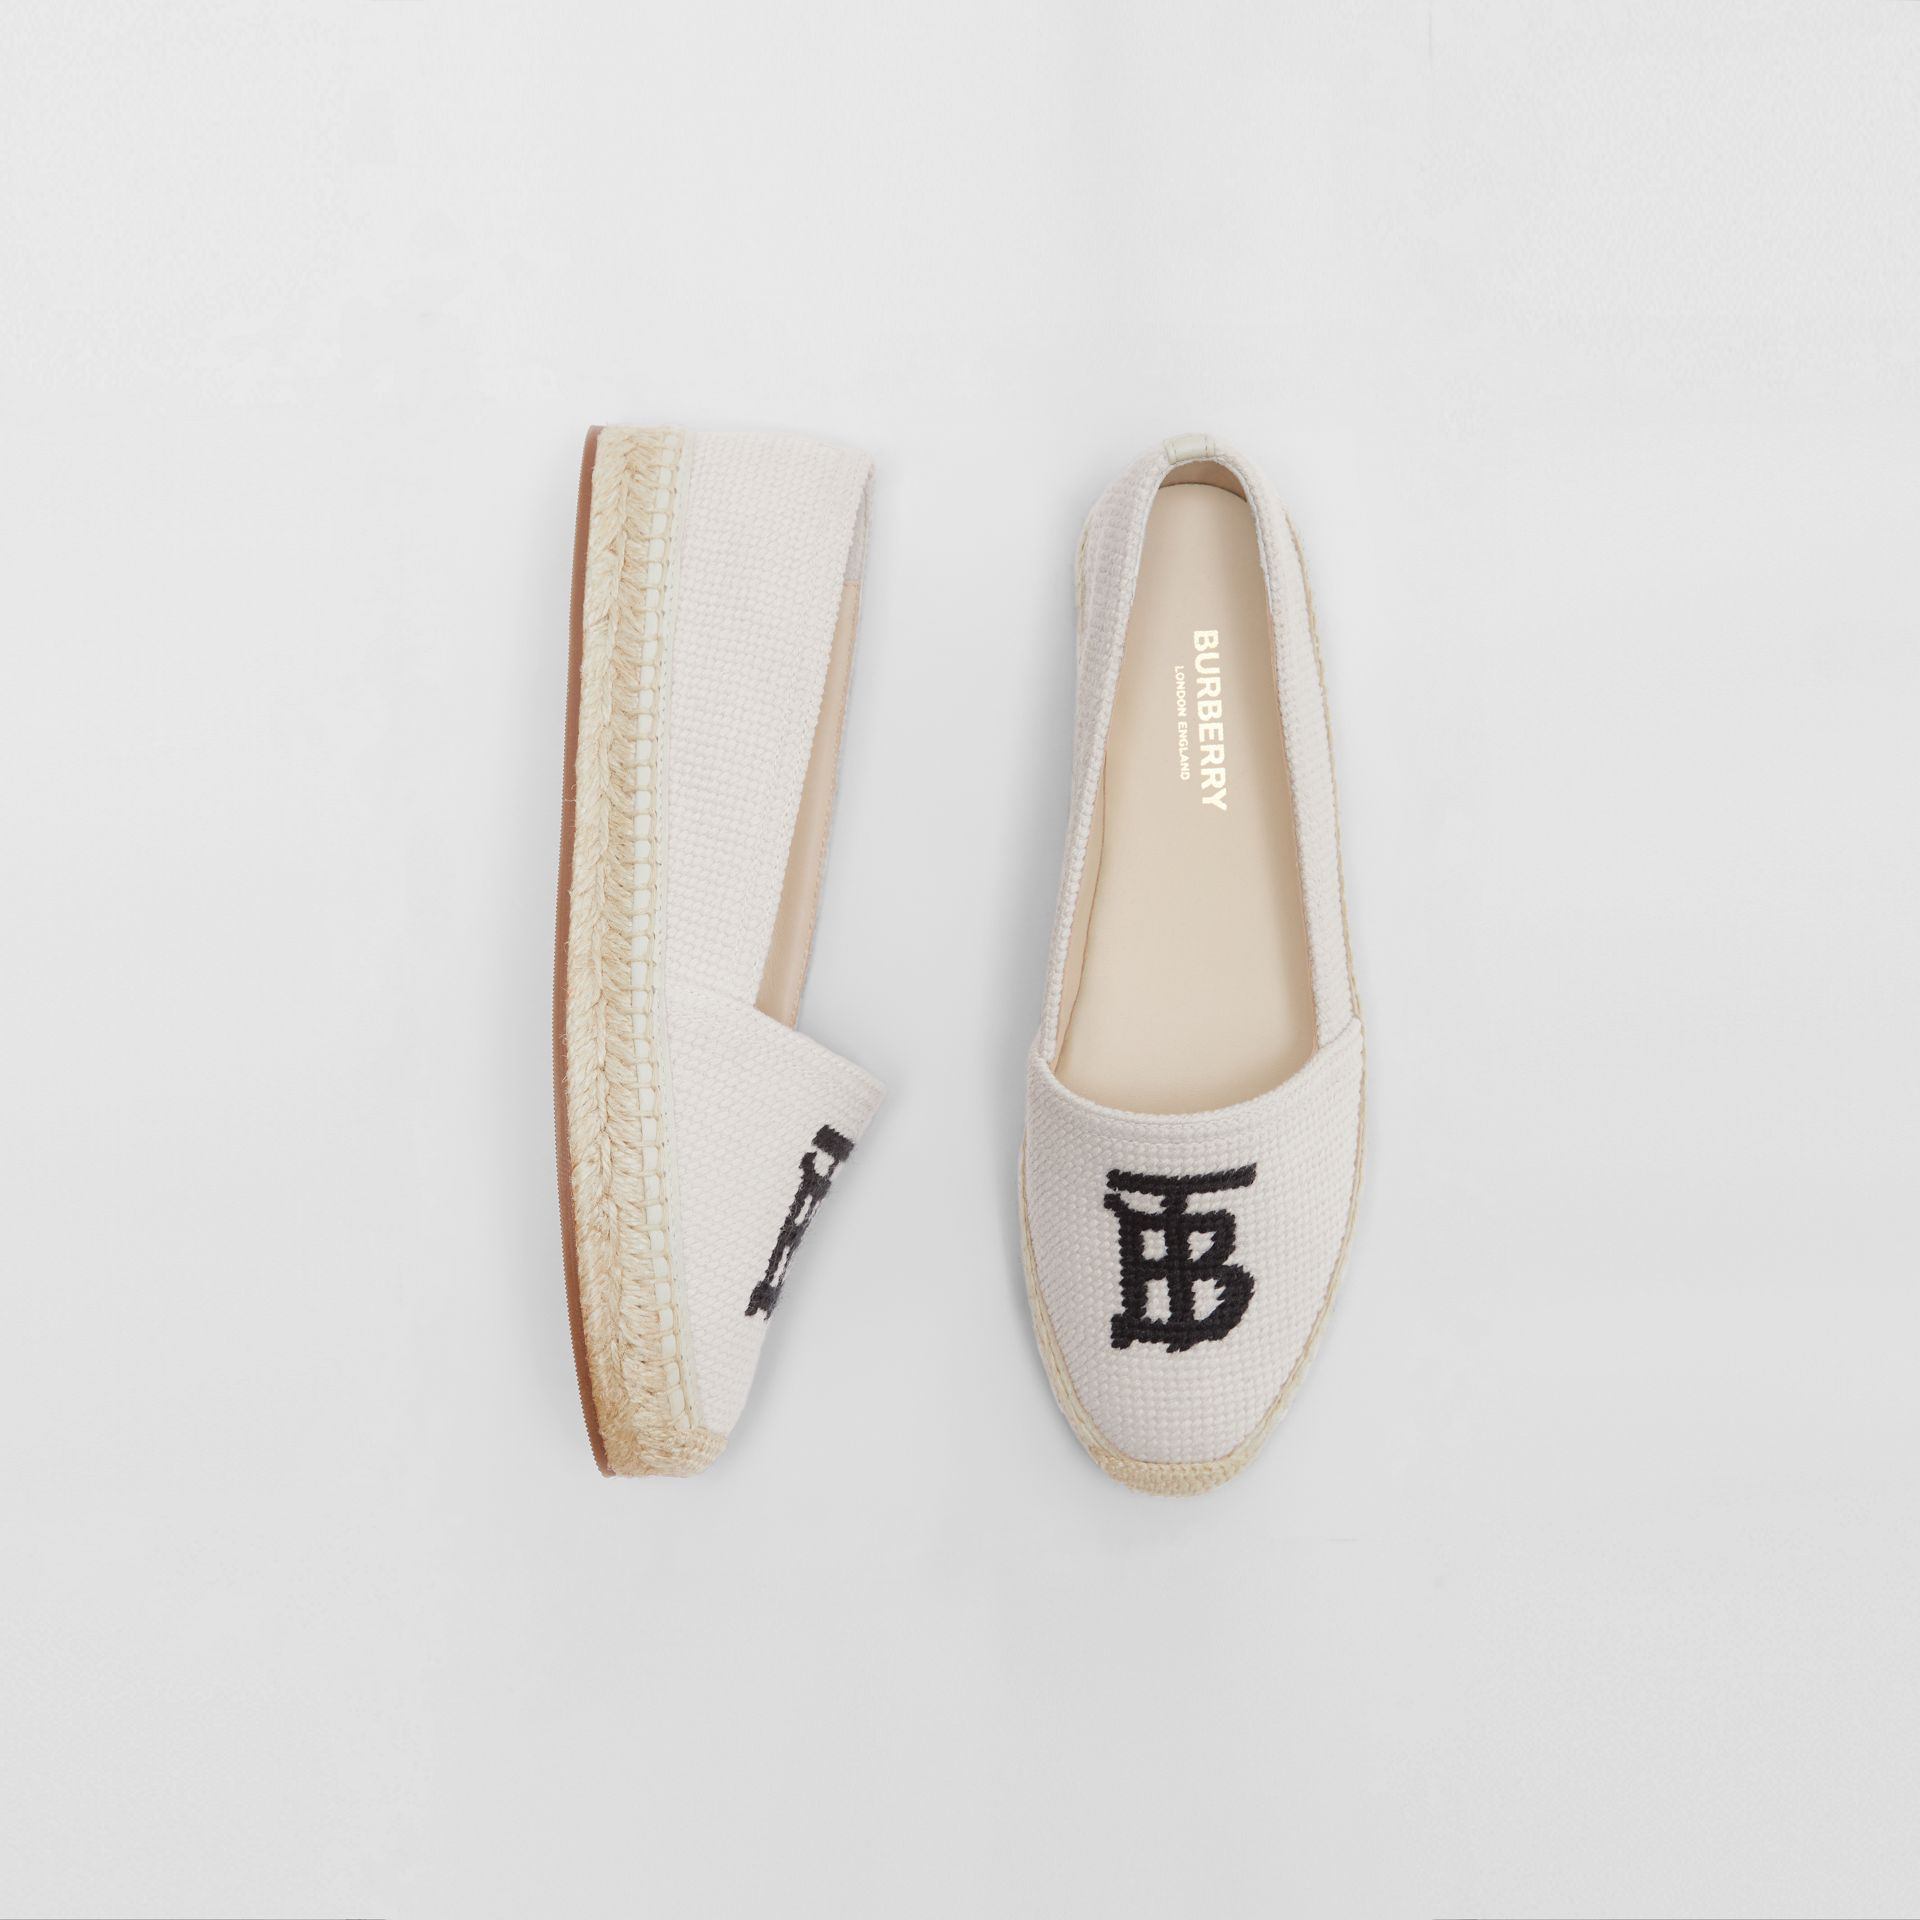 Monogram Motif Cotton and Leather Espadrilles in Ecru/black | Burberry Singapore - gallery image 0